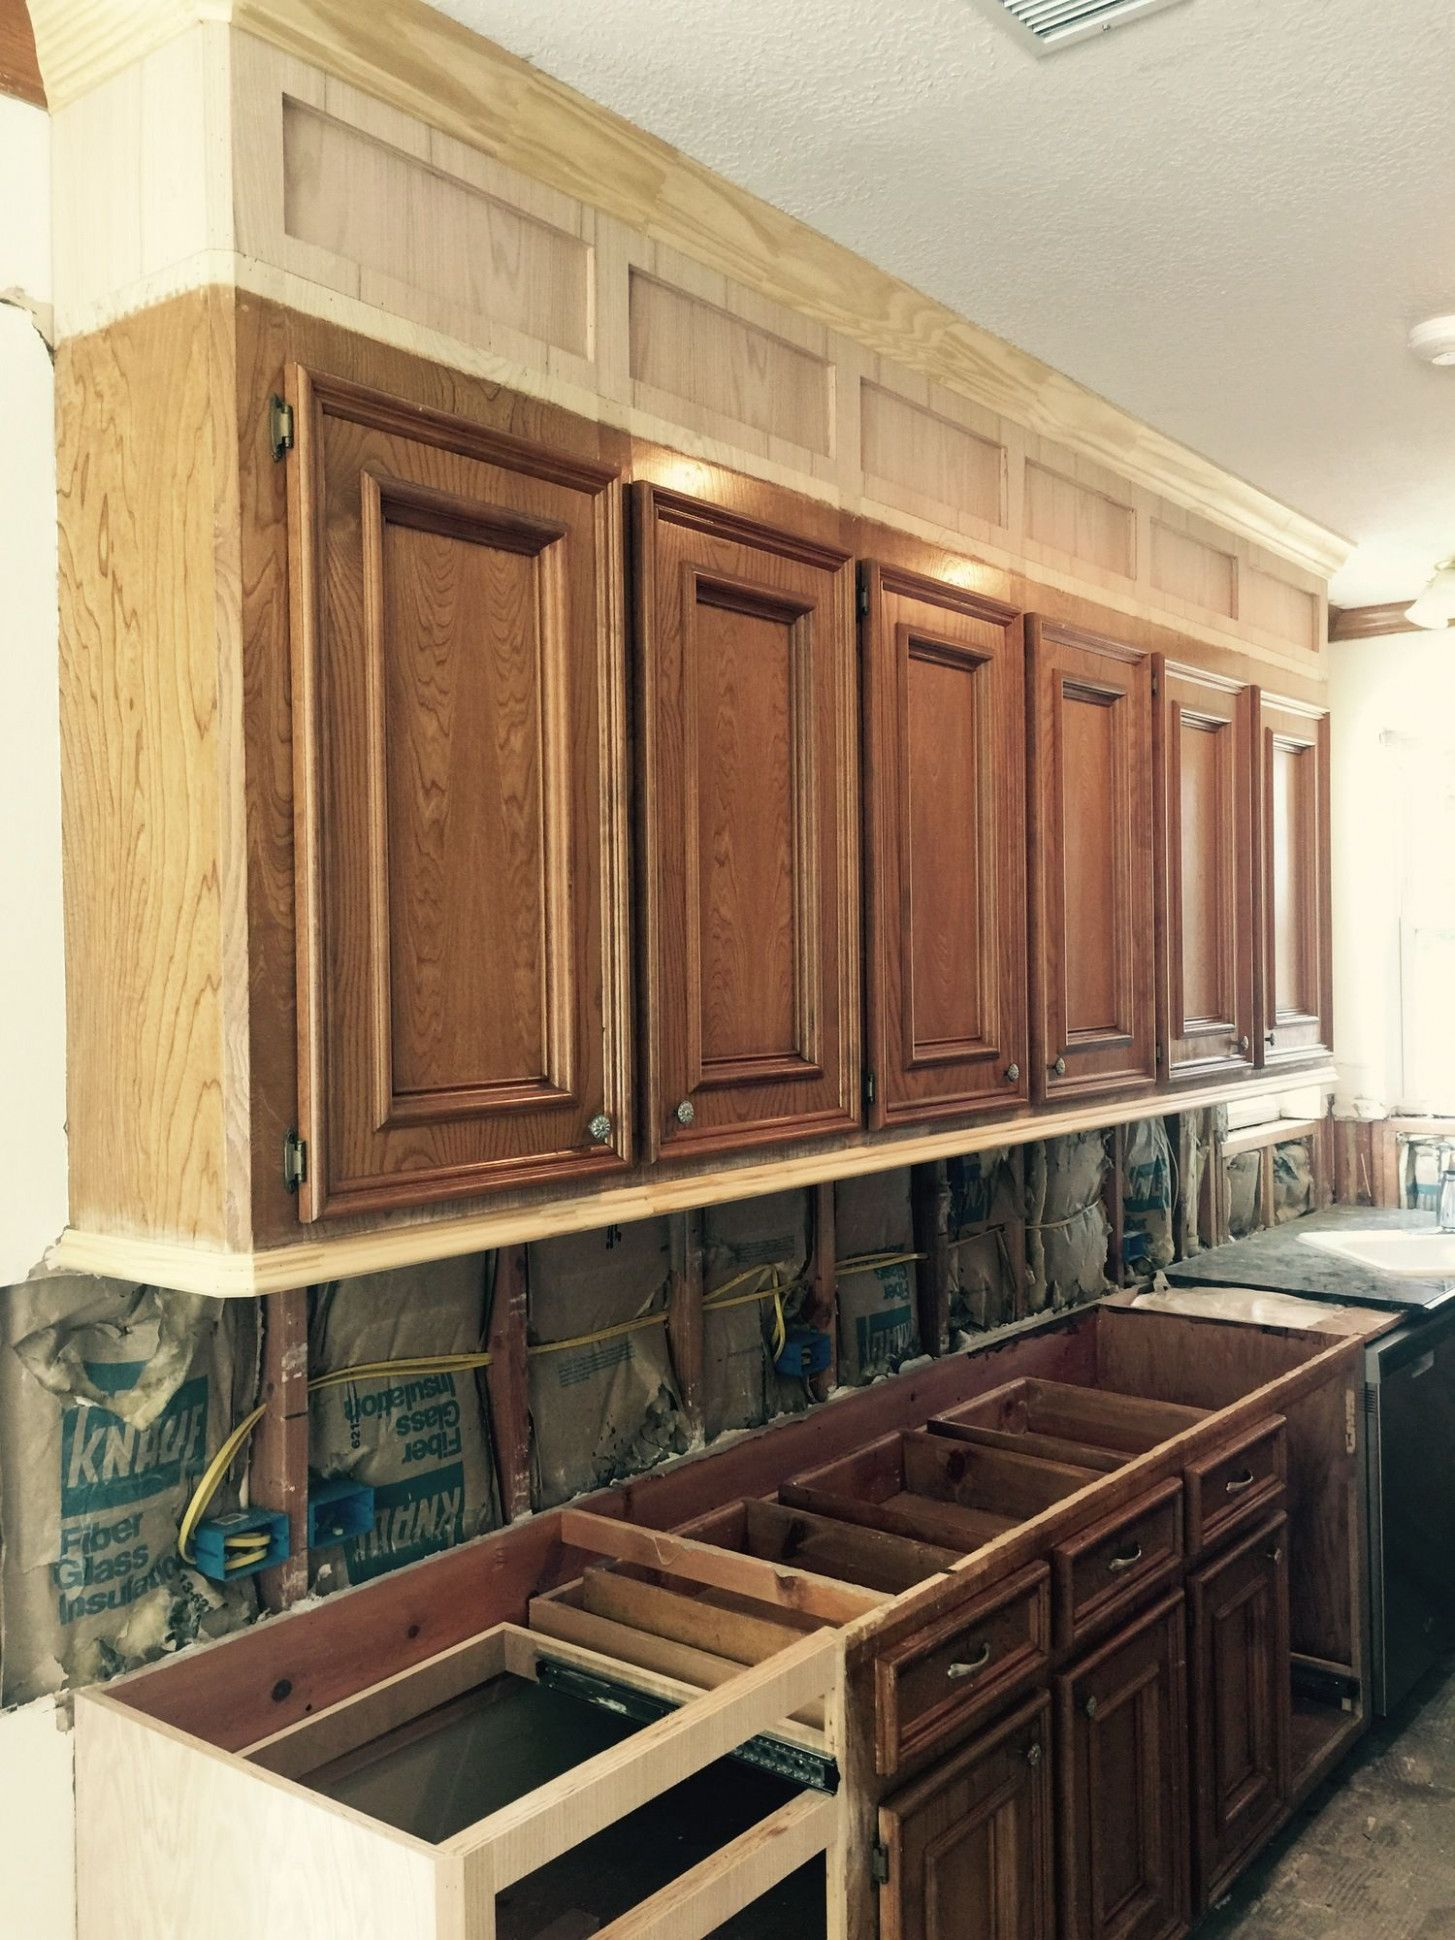 8 Adding Small Cabinets Above Existing Kitchen Cabinets Di 2020 Penyimpanan Dapur Dapur Penyimpanan